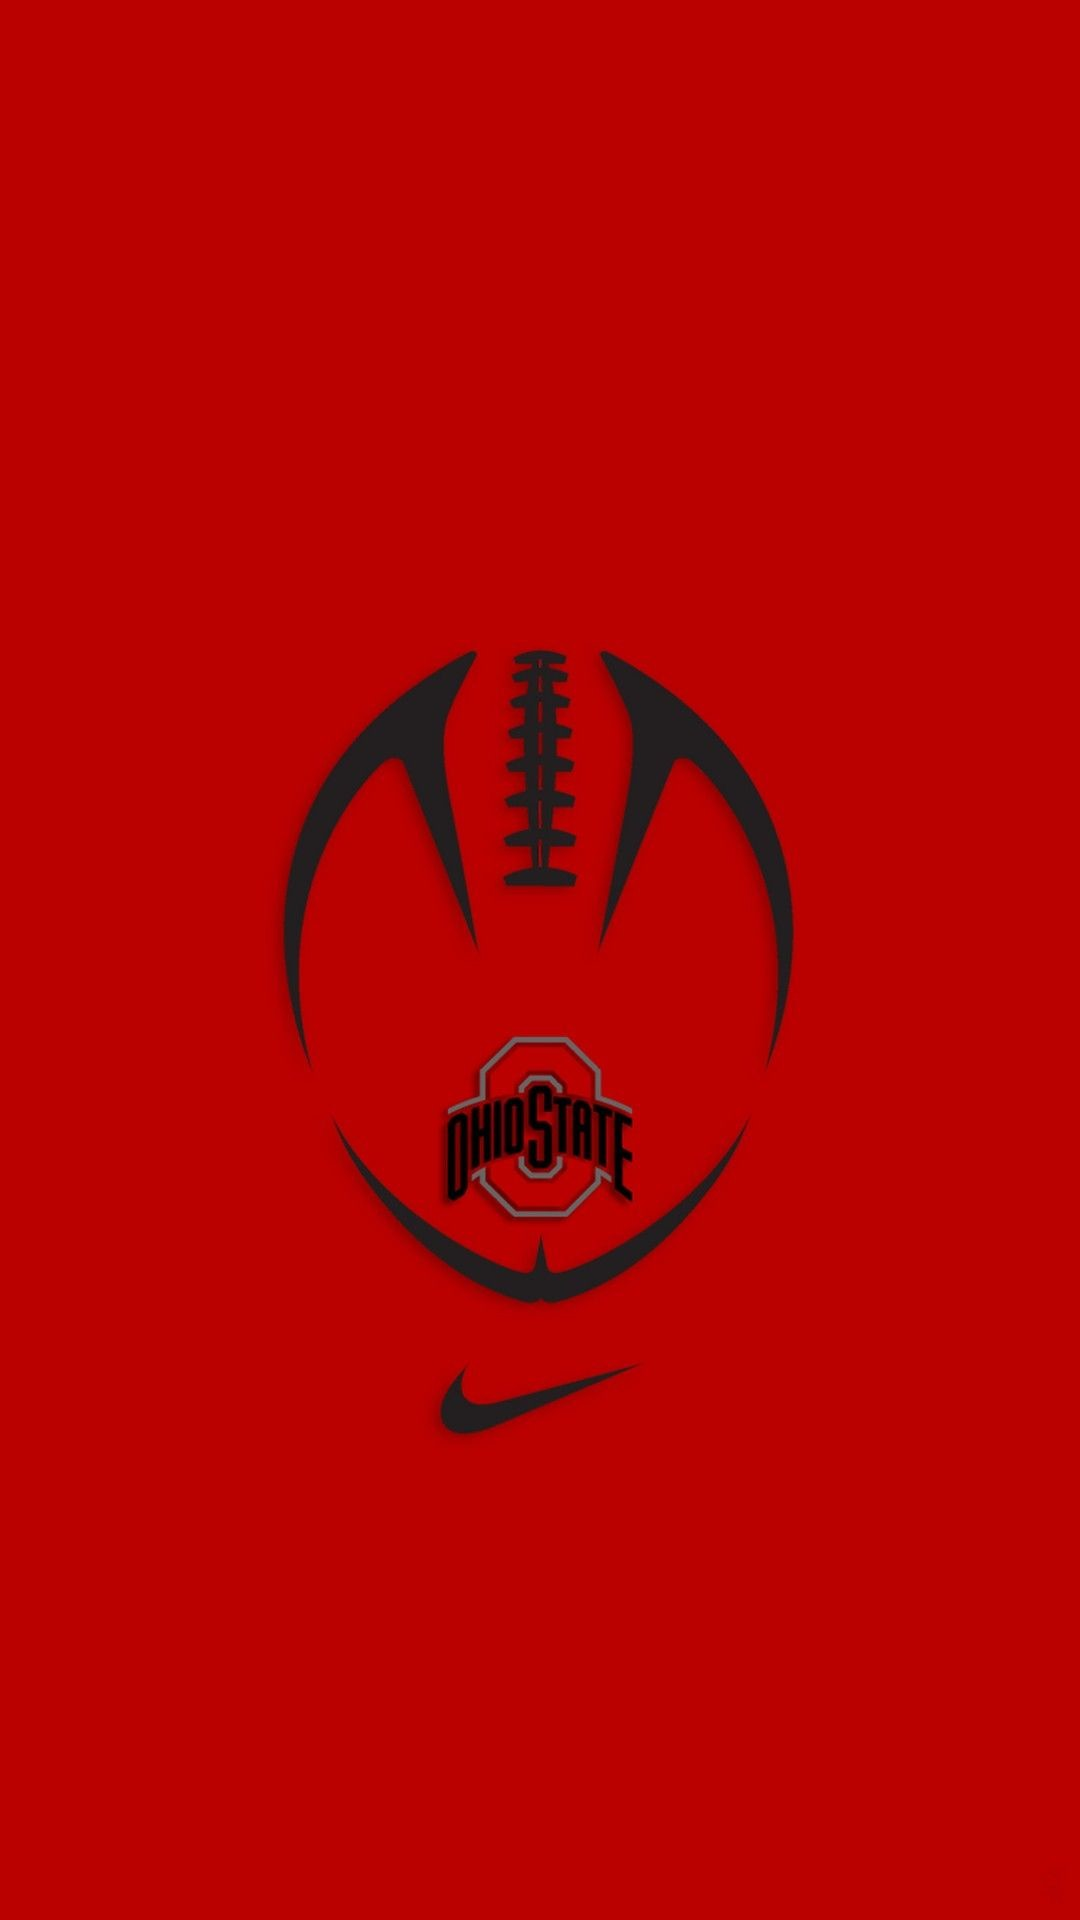 Res: 1080x1920, Ohio State Buckeyes Wallpaper iPhone - Best iPhone Wallpaper